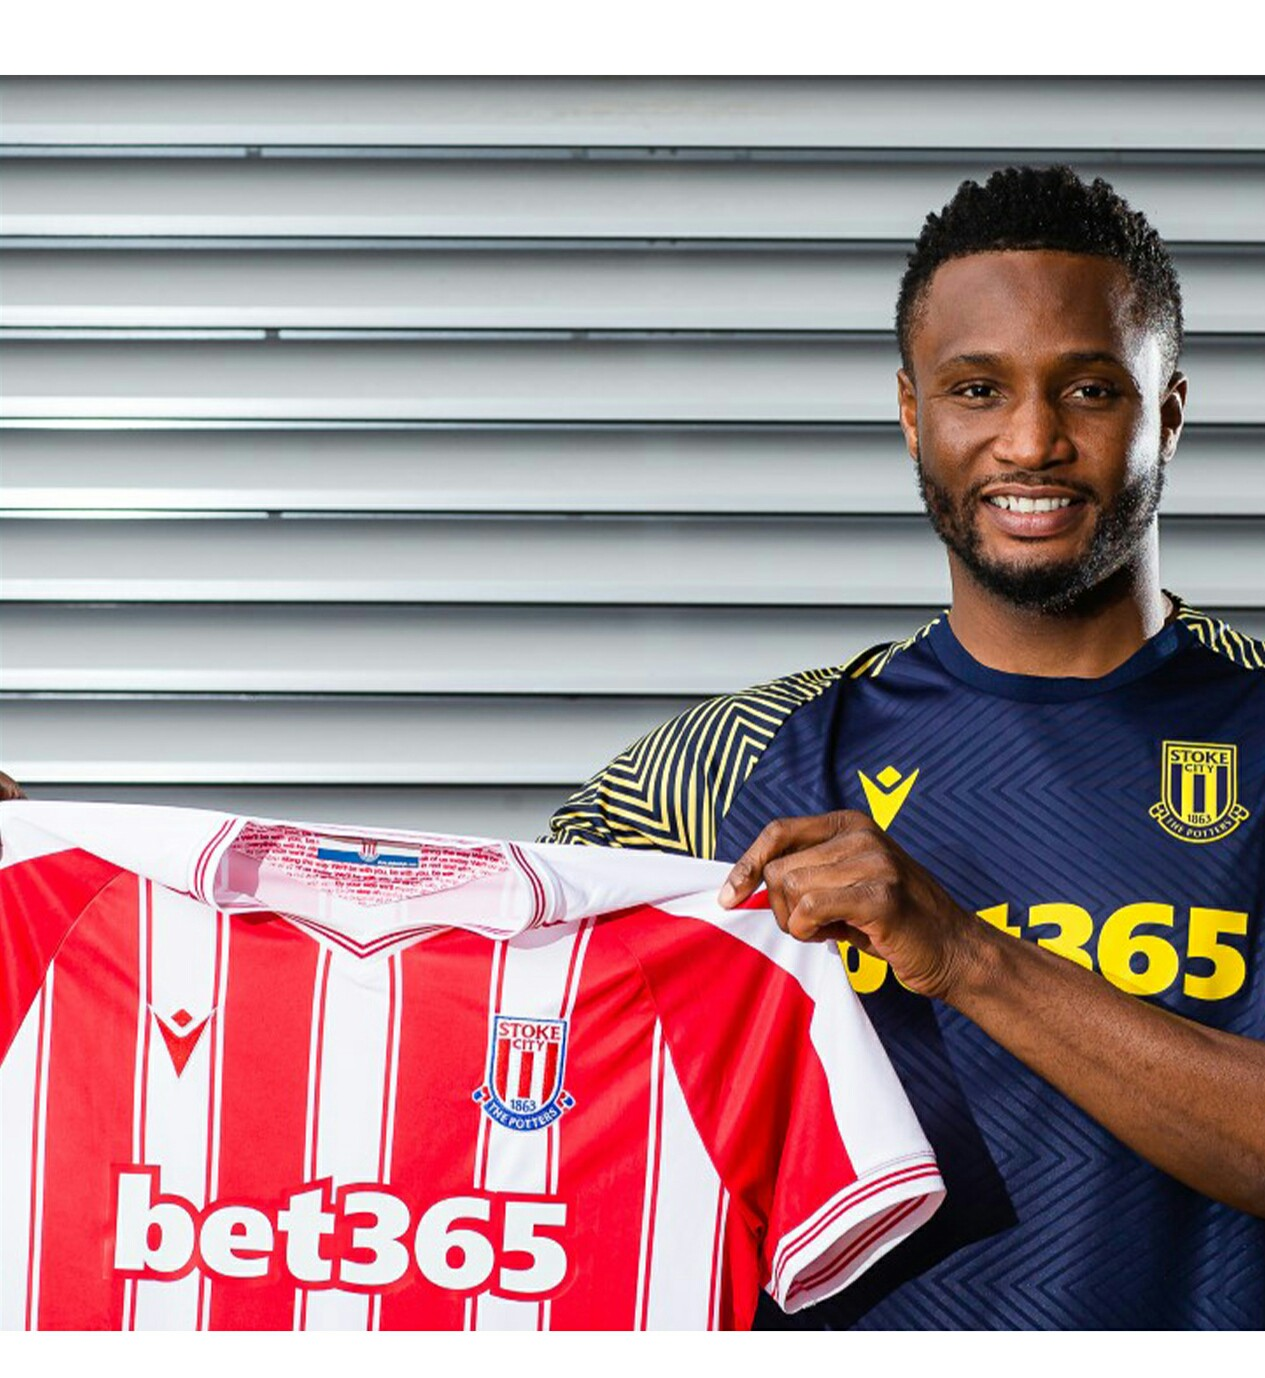 Stoke City Fans React To Mikel Signing